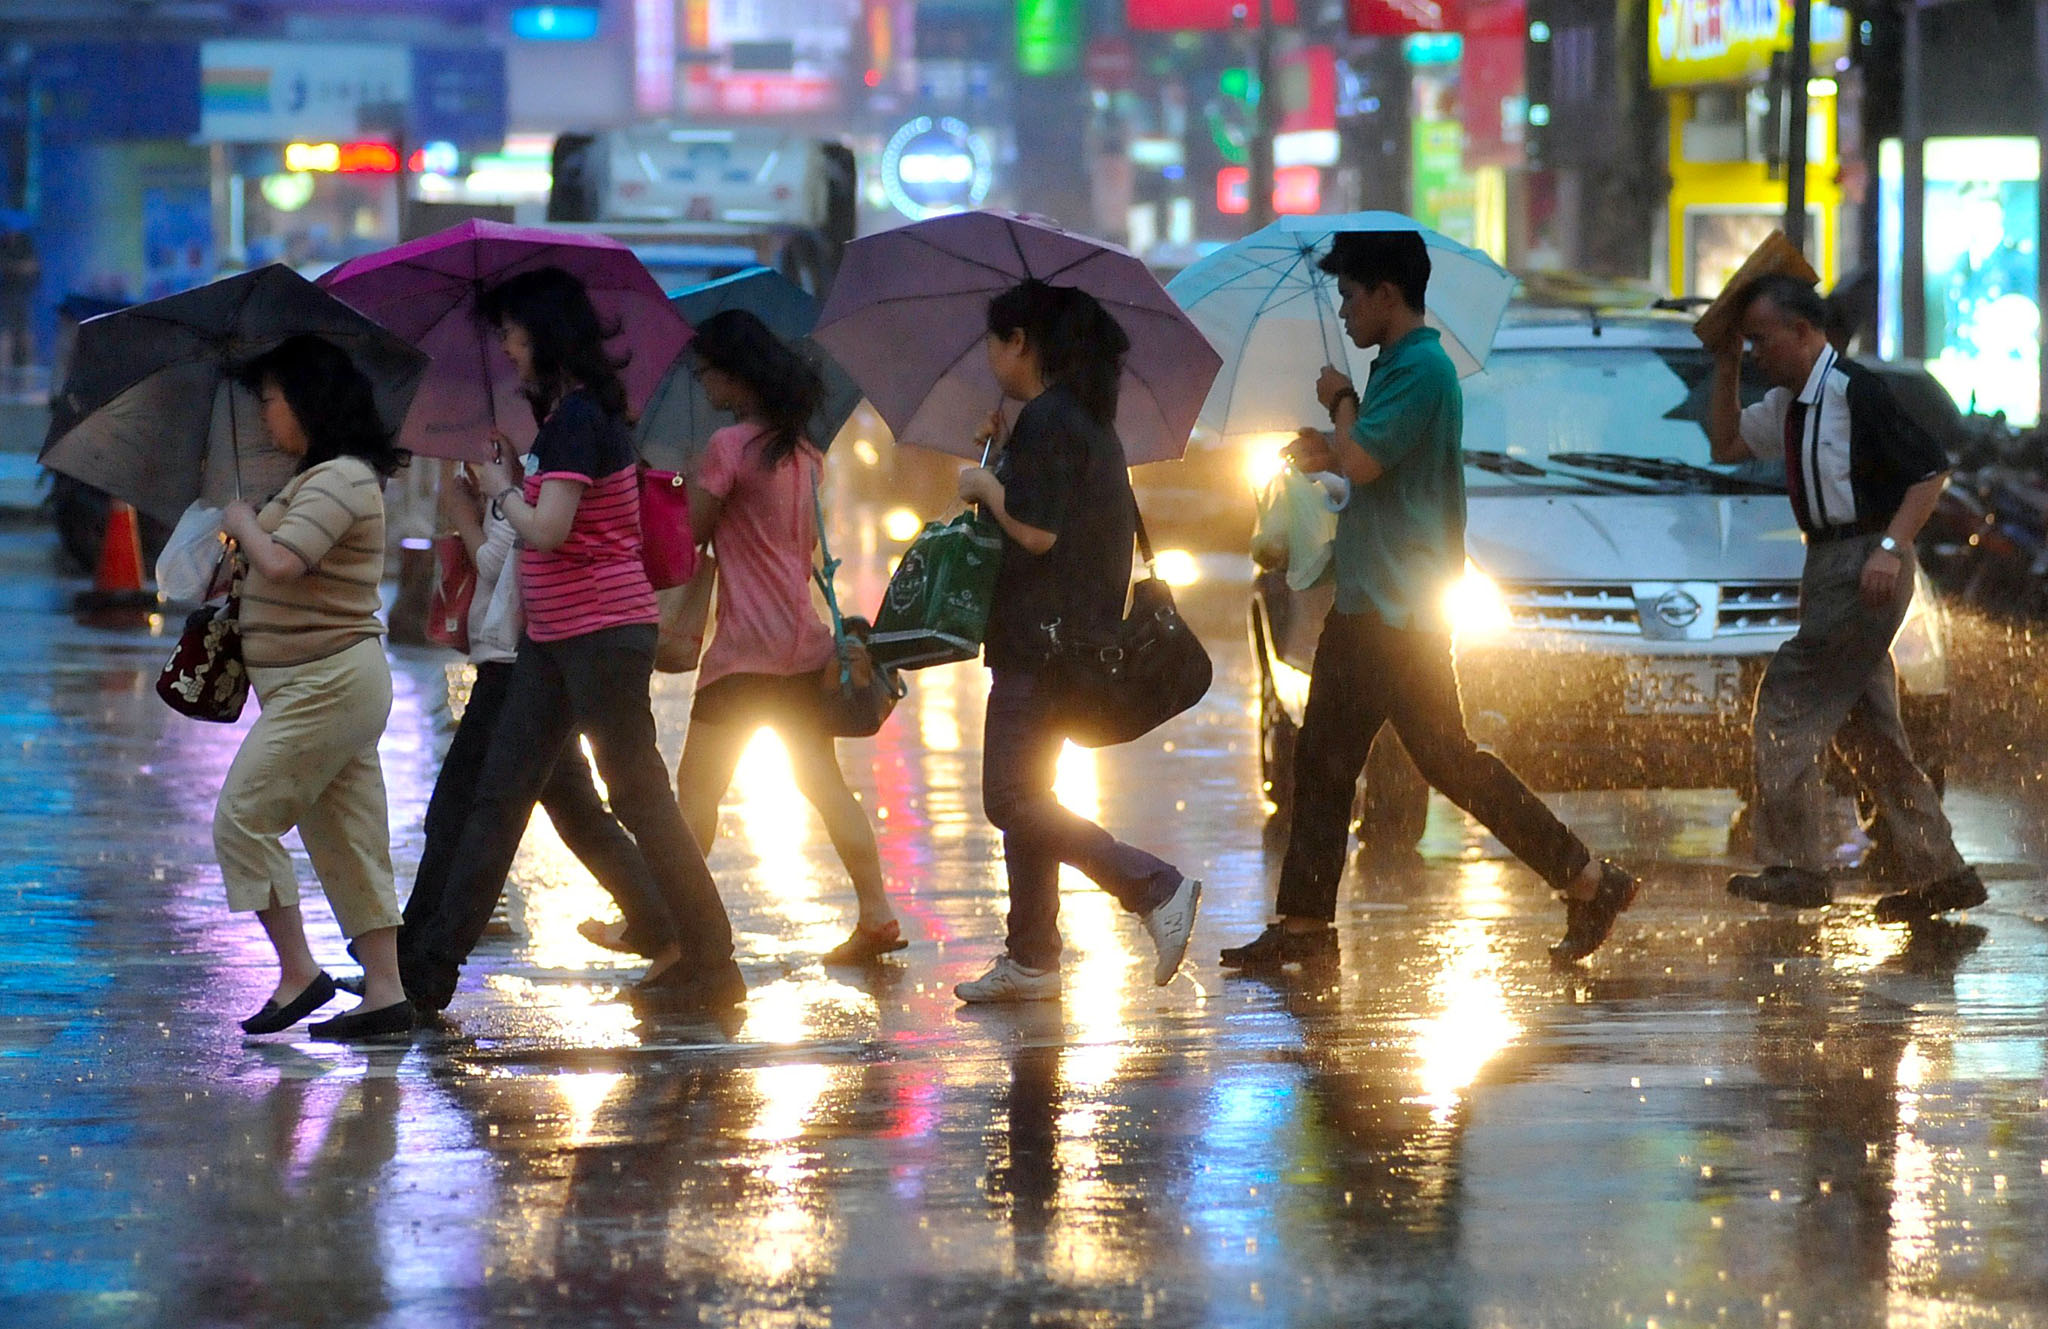 Pedestrians shield themselves from the r...Pedestrians shield themselves from the rain with umbrellas as they cross a street in Taipei on July 22, 2014 as Typhoon Matmo approaches eastern Taiwan. Typhoon Matmo churned towards Taiwan on July 22, picking up strength with thousands of tourists evacuated from outlying islands as weather forecasters warned of possible flash floods and landslides.   AFP PHOTO / Mandy CHENGMandy Cheng/AFP/Getty Images